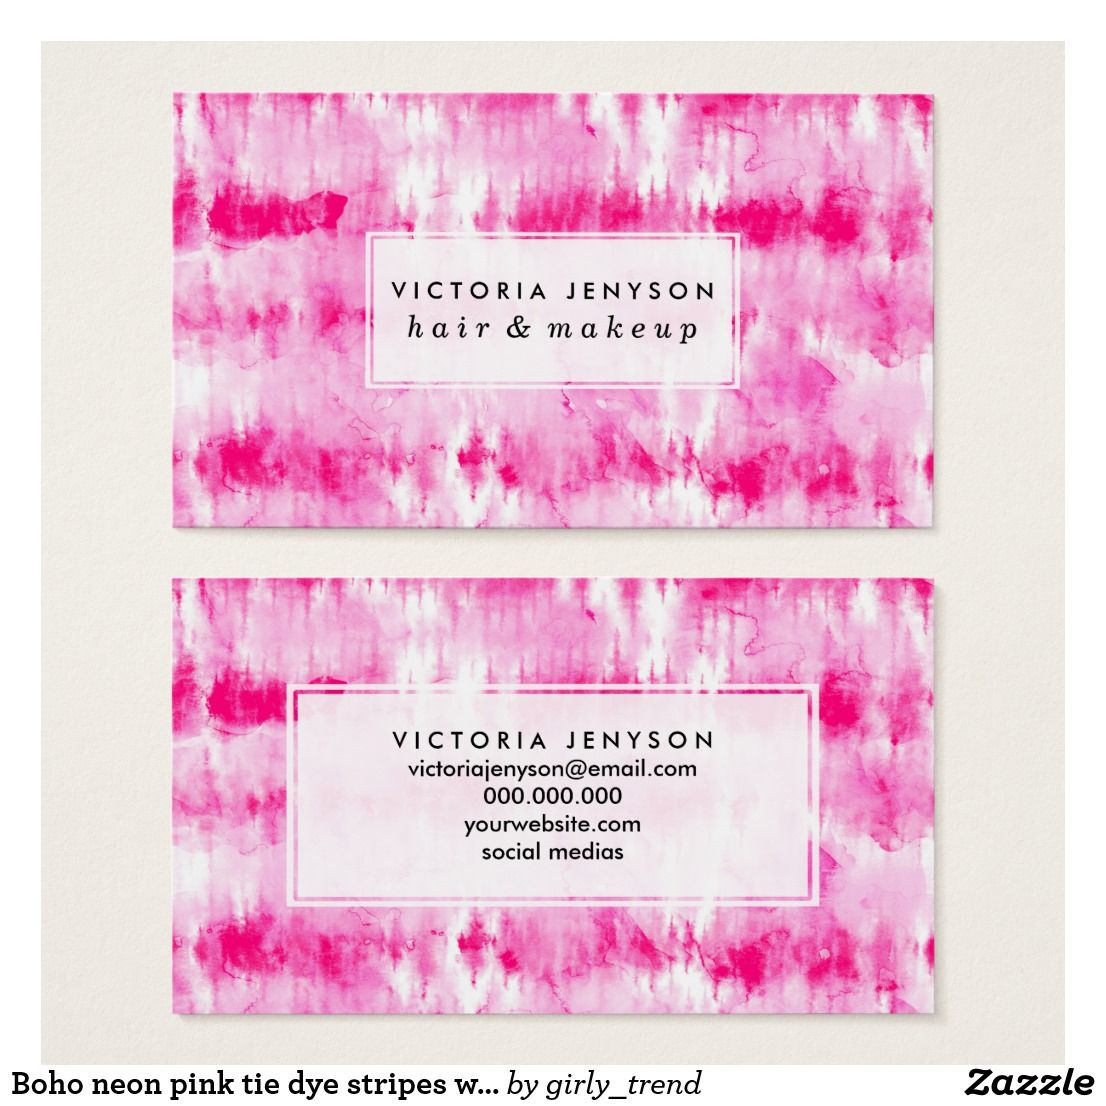 Boho neon pink tie dye stripes watercolor business card | Watercolor ...